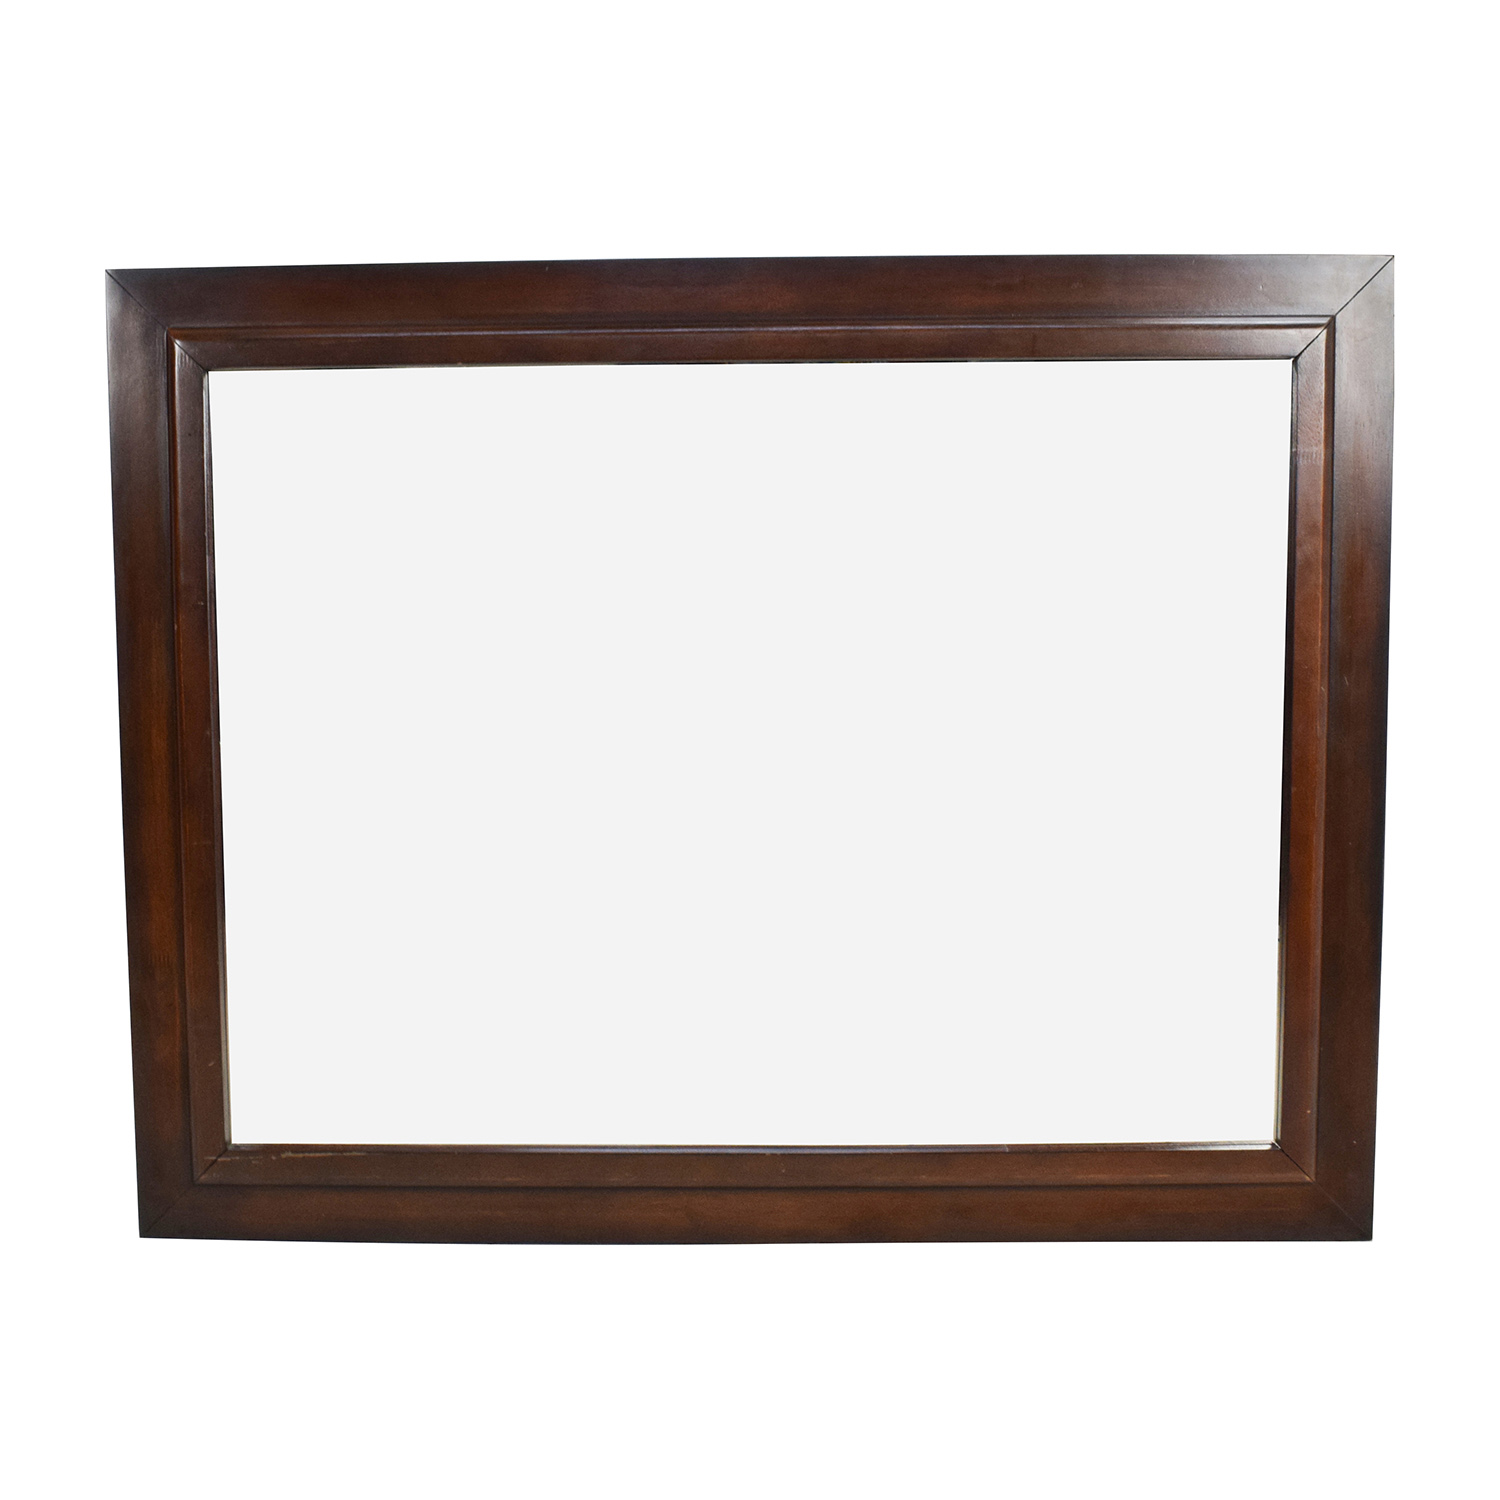 80 off large square wood framed wall mirror decor for Wood framed mirrors